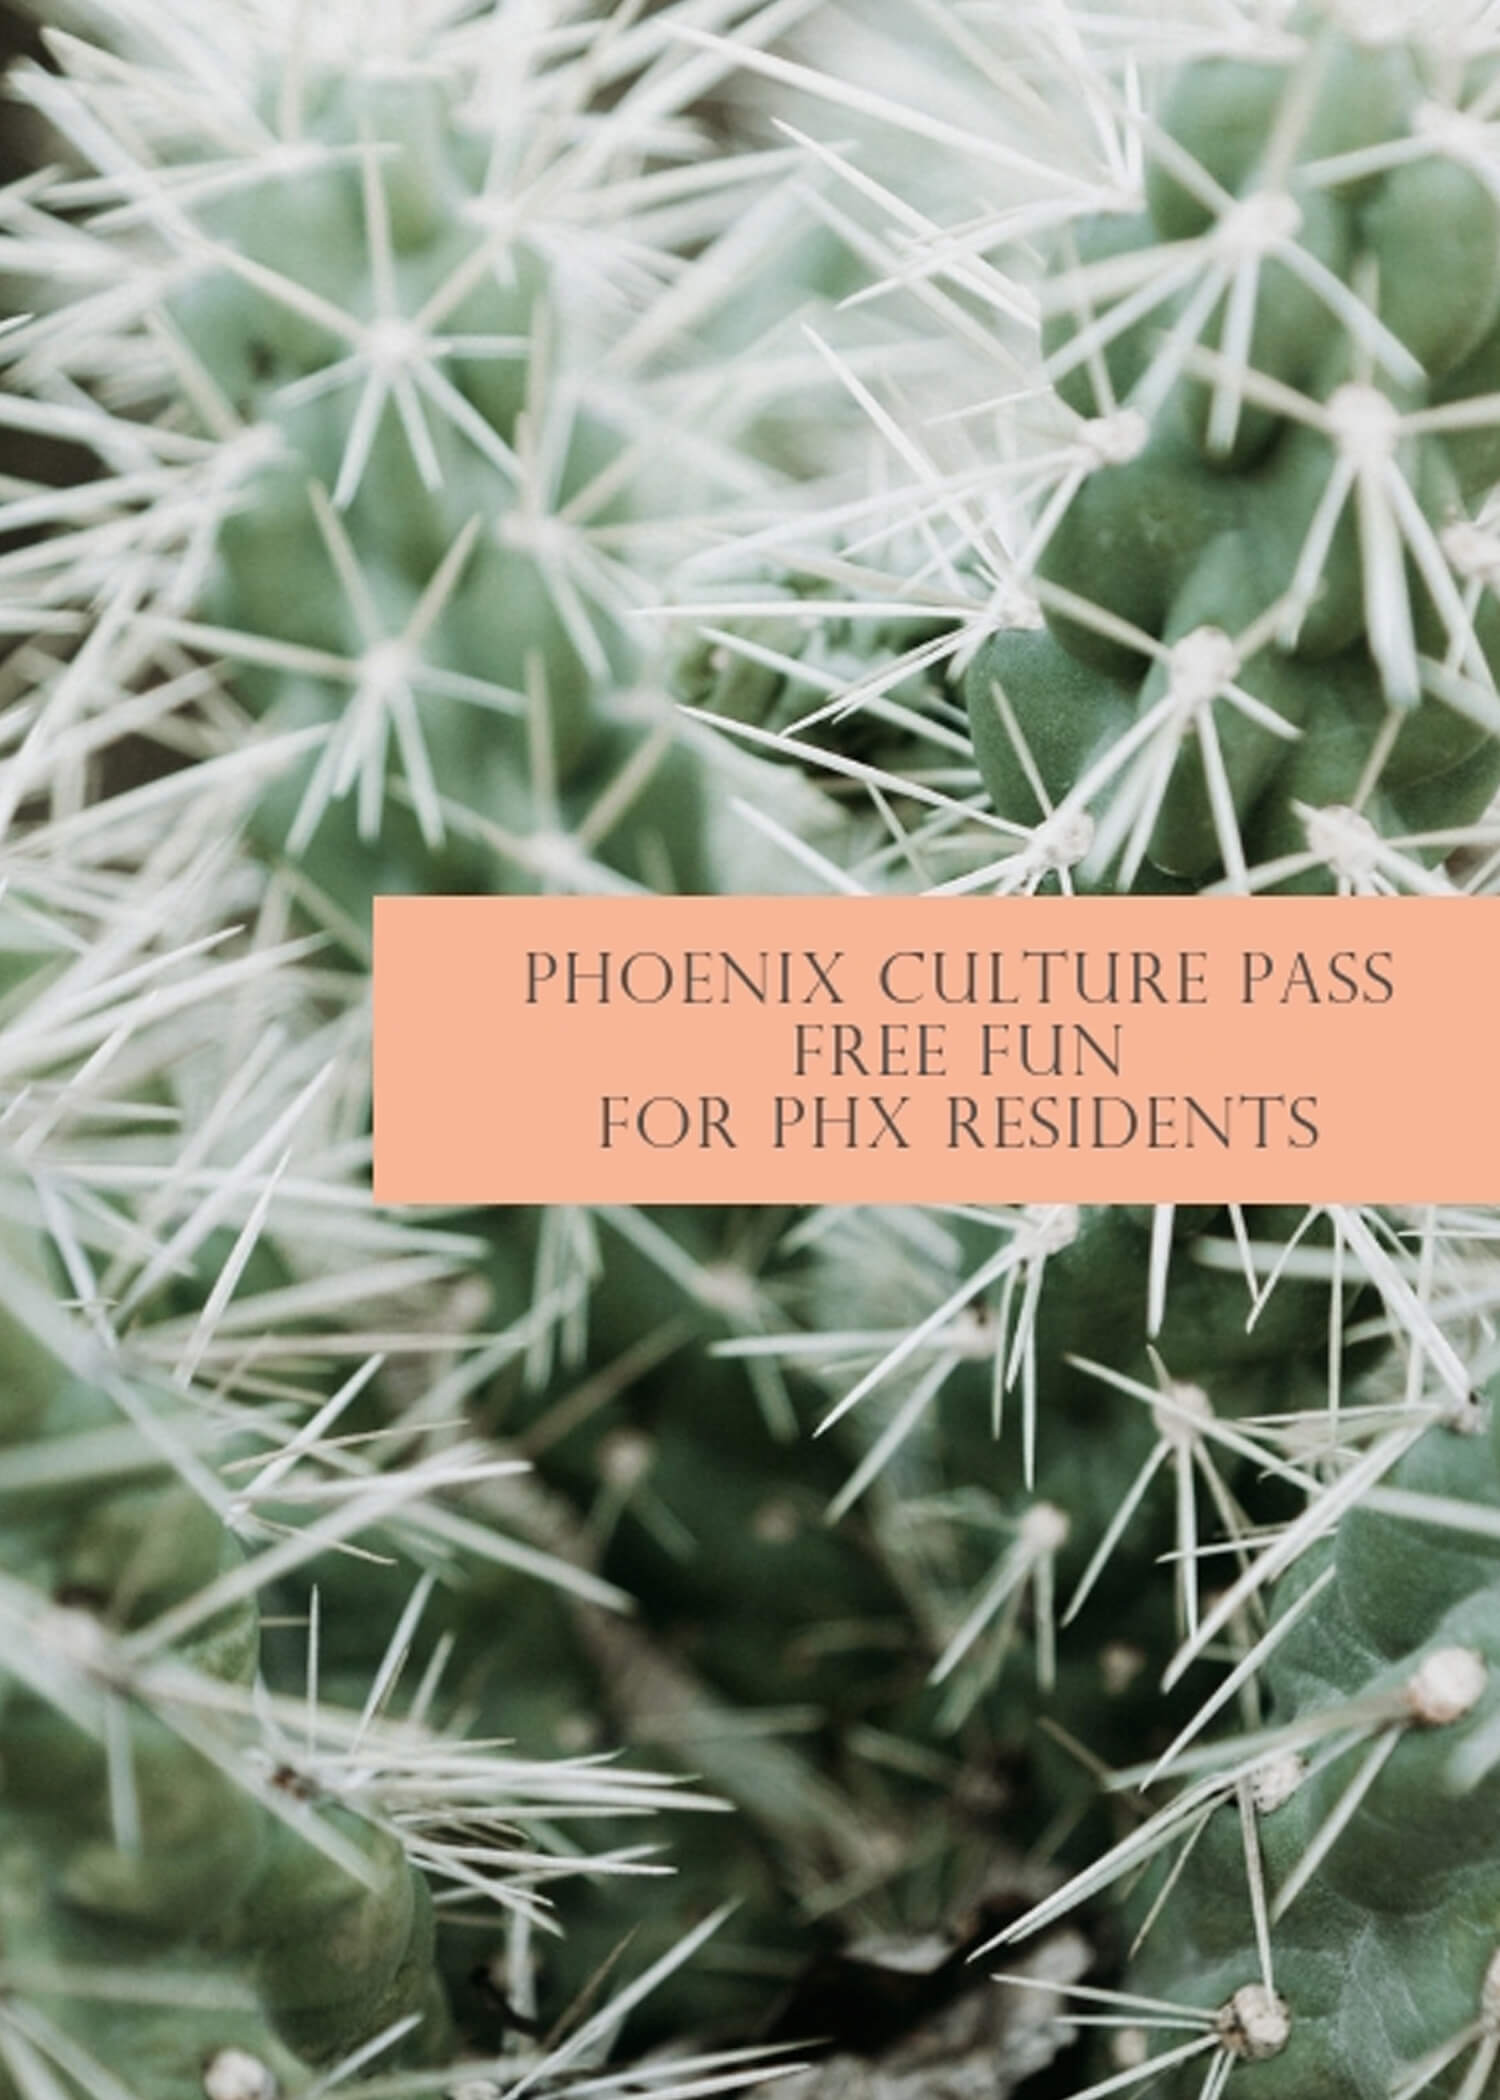 Have you heard of the Culture Pass?